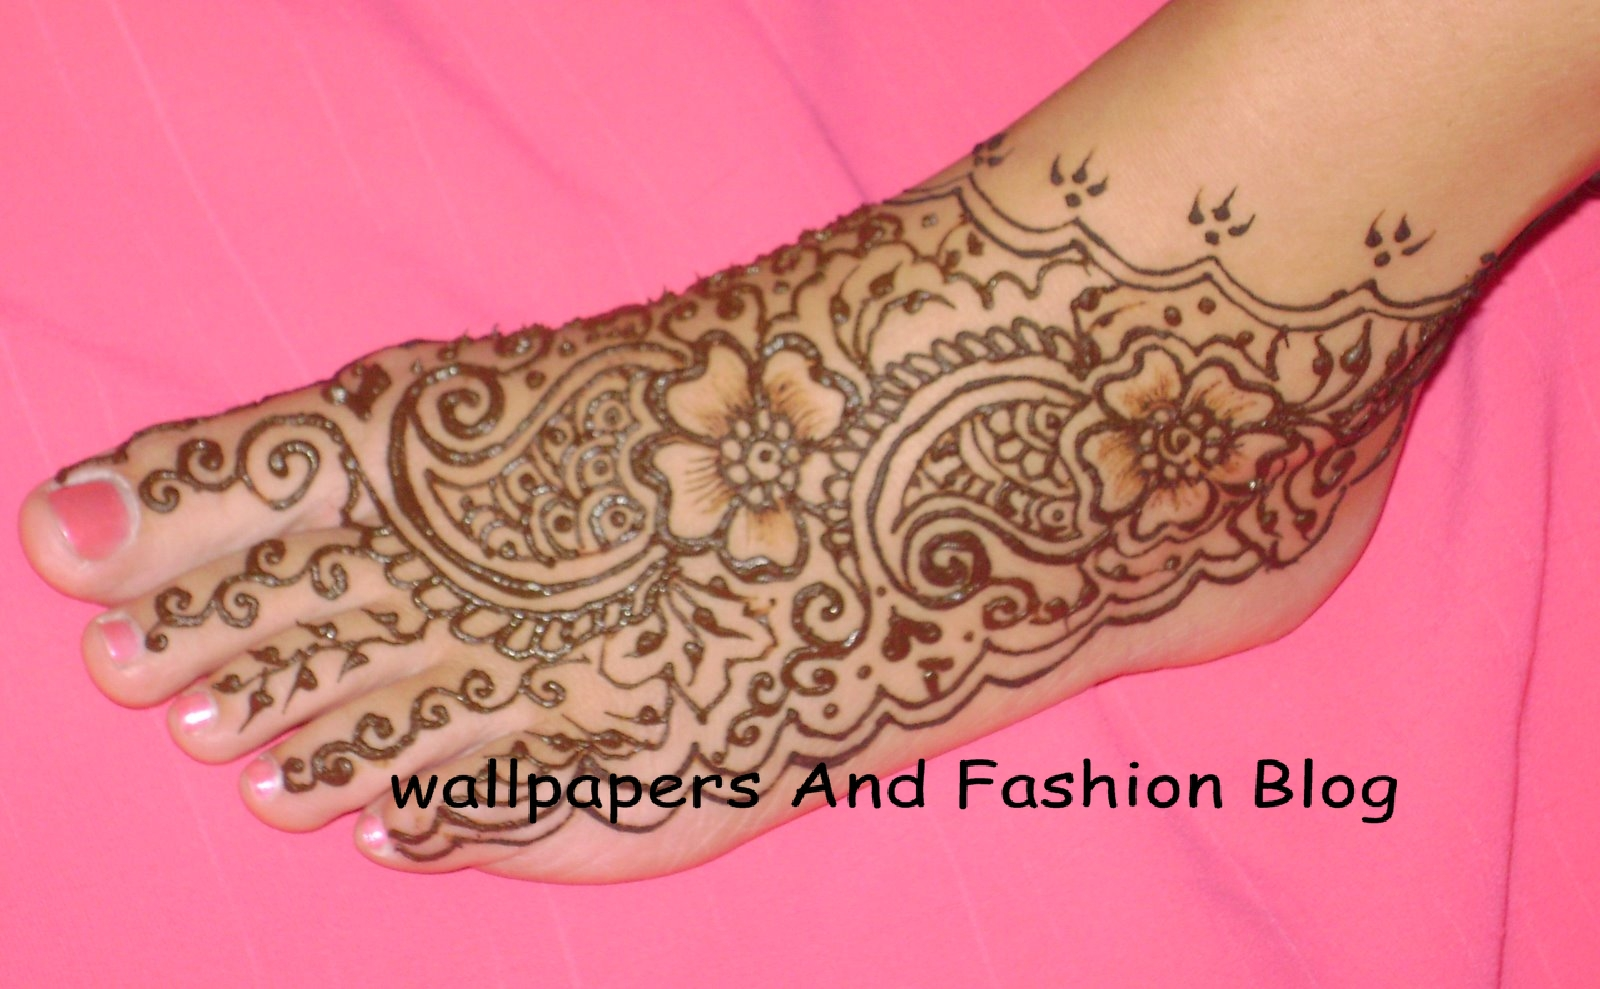 Beautiful Feet Mehndi Designs Sheplanet Images Crazy Gallery Wallpaper